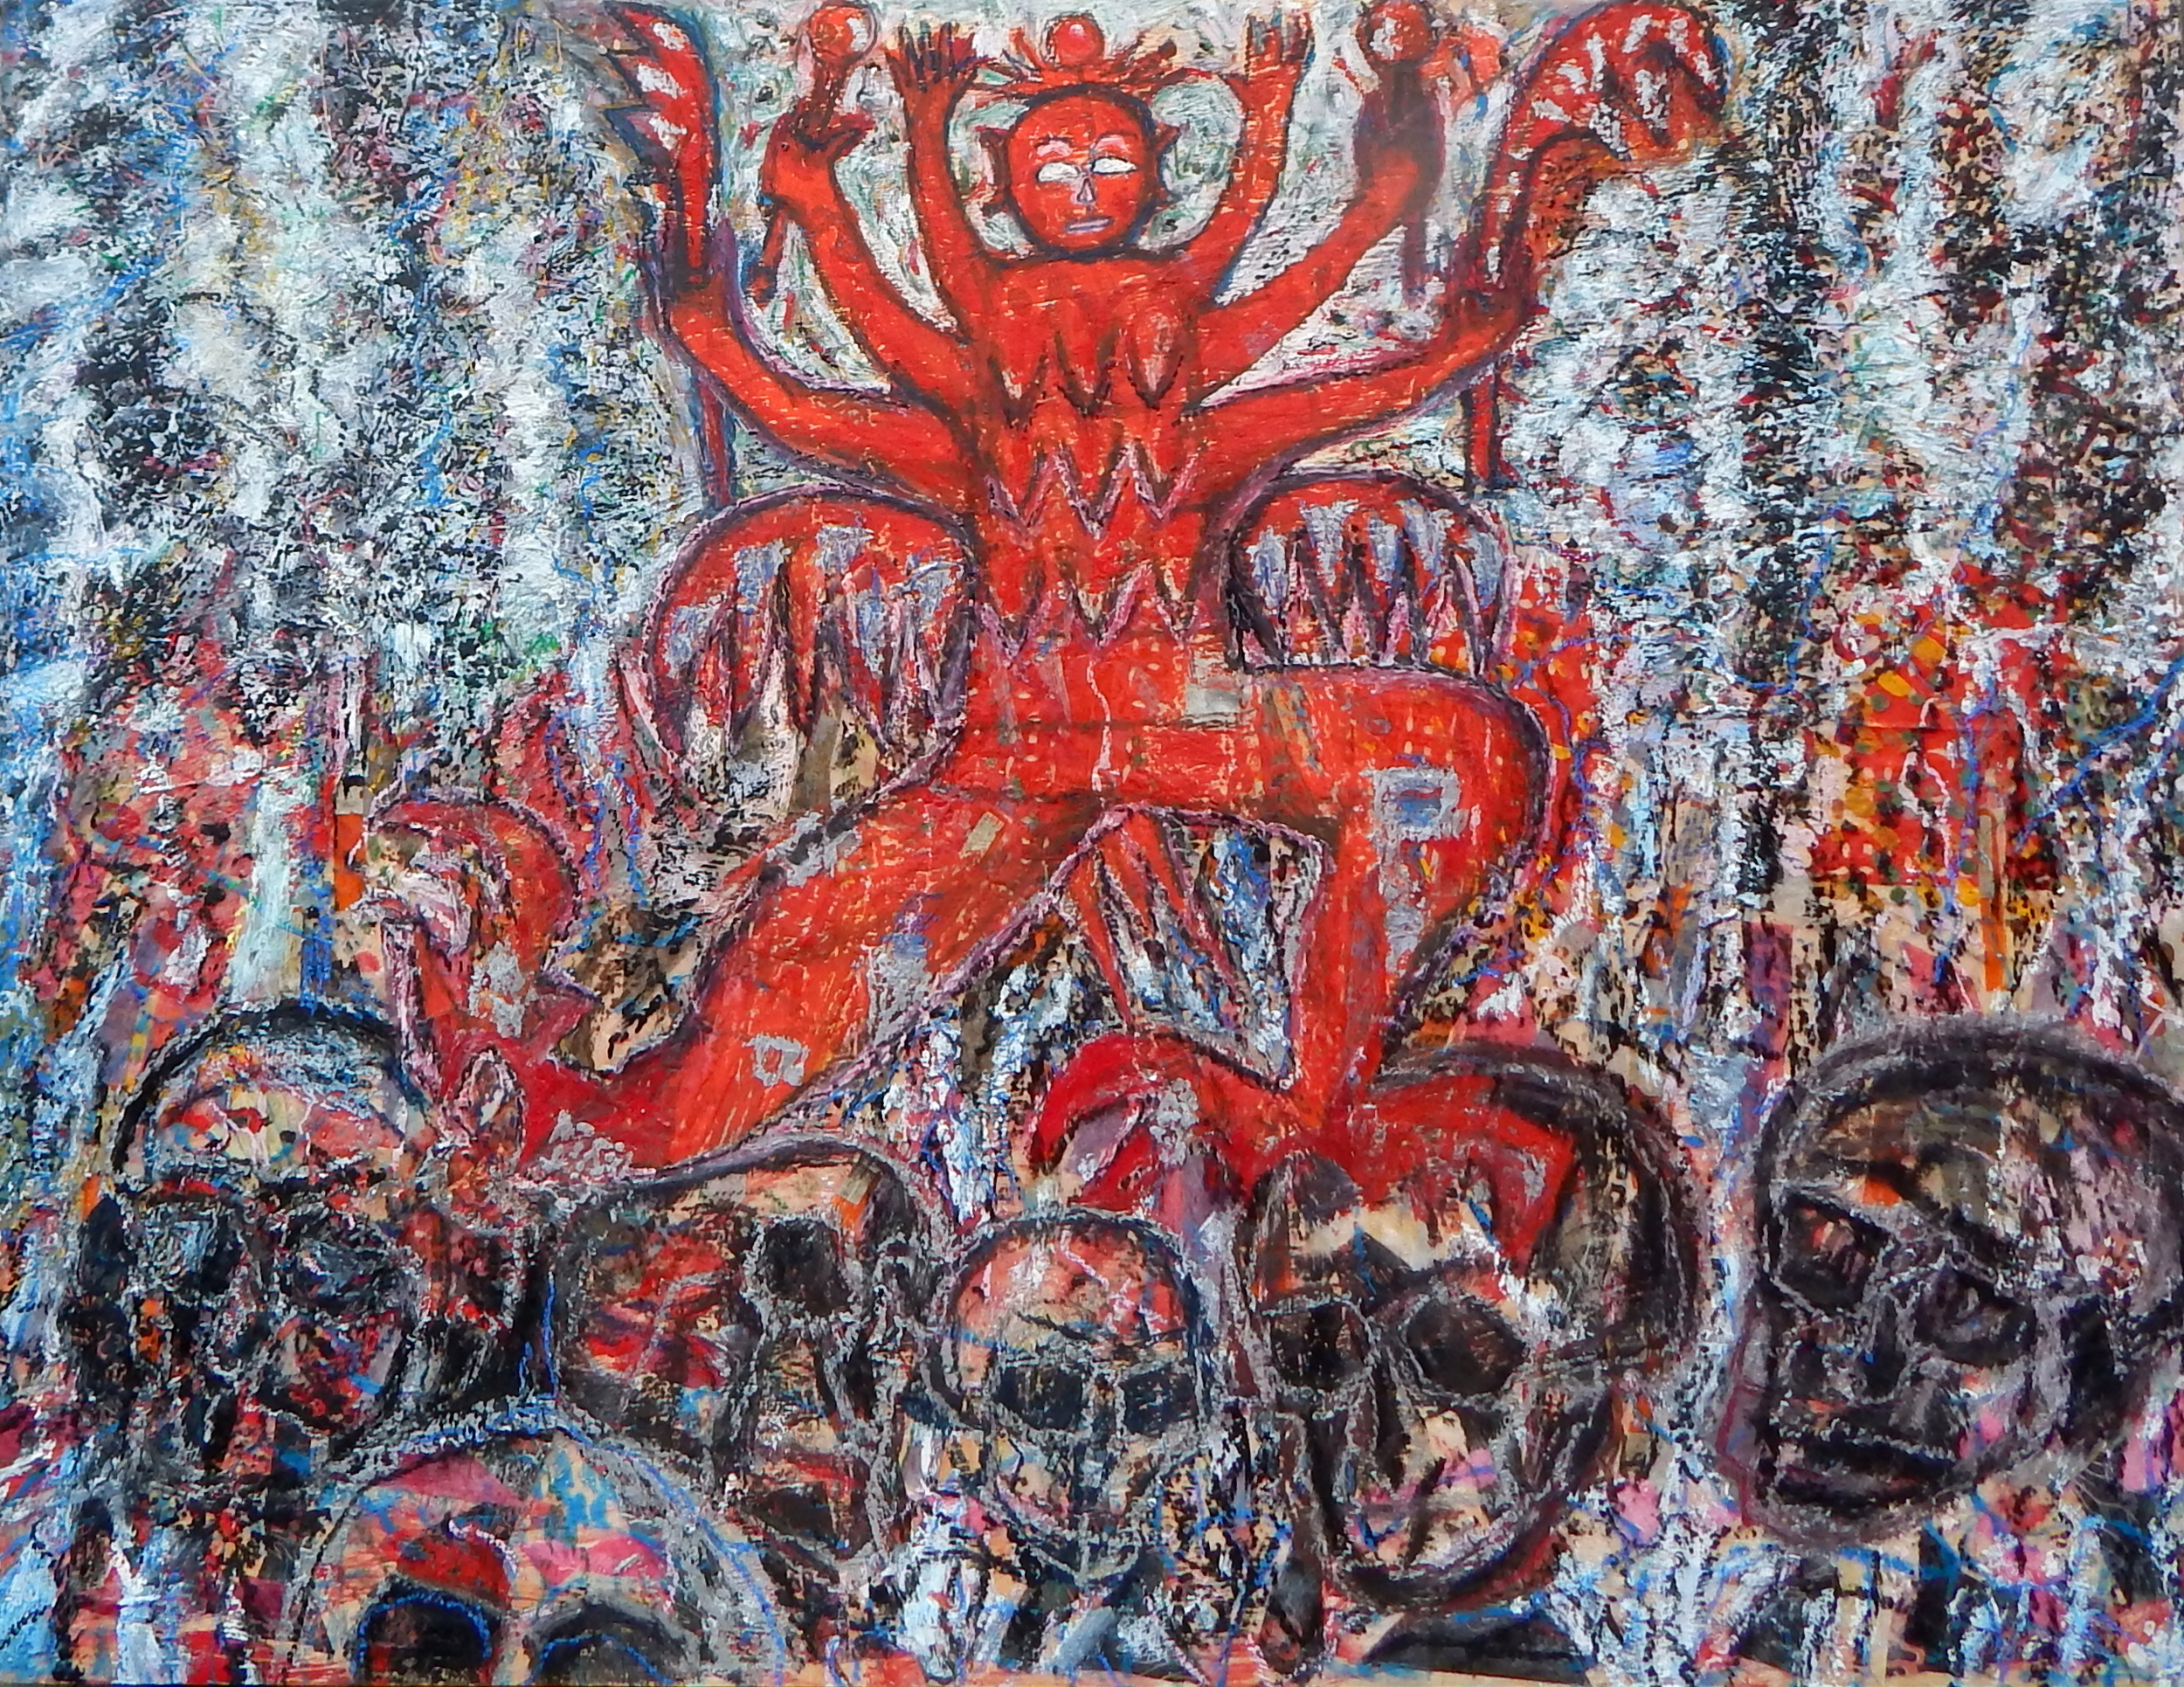 Vanquishing the Ghosts, encaustic and oil, 2014